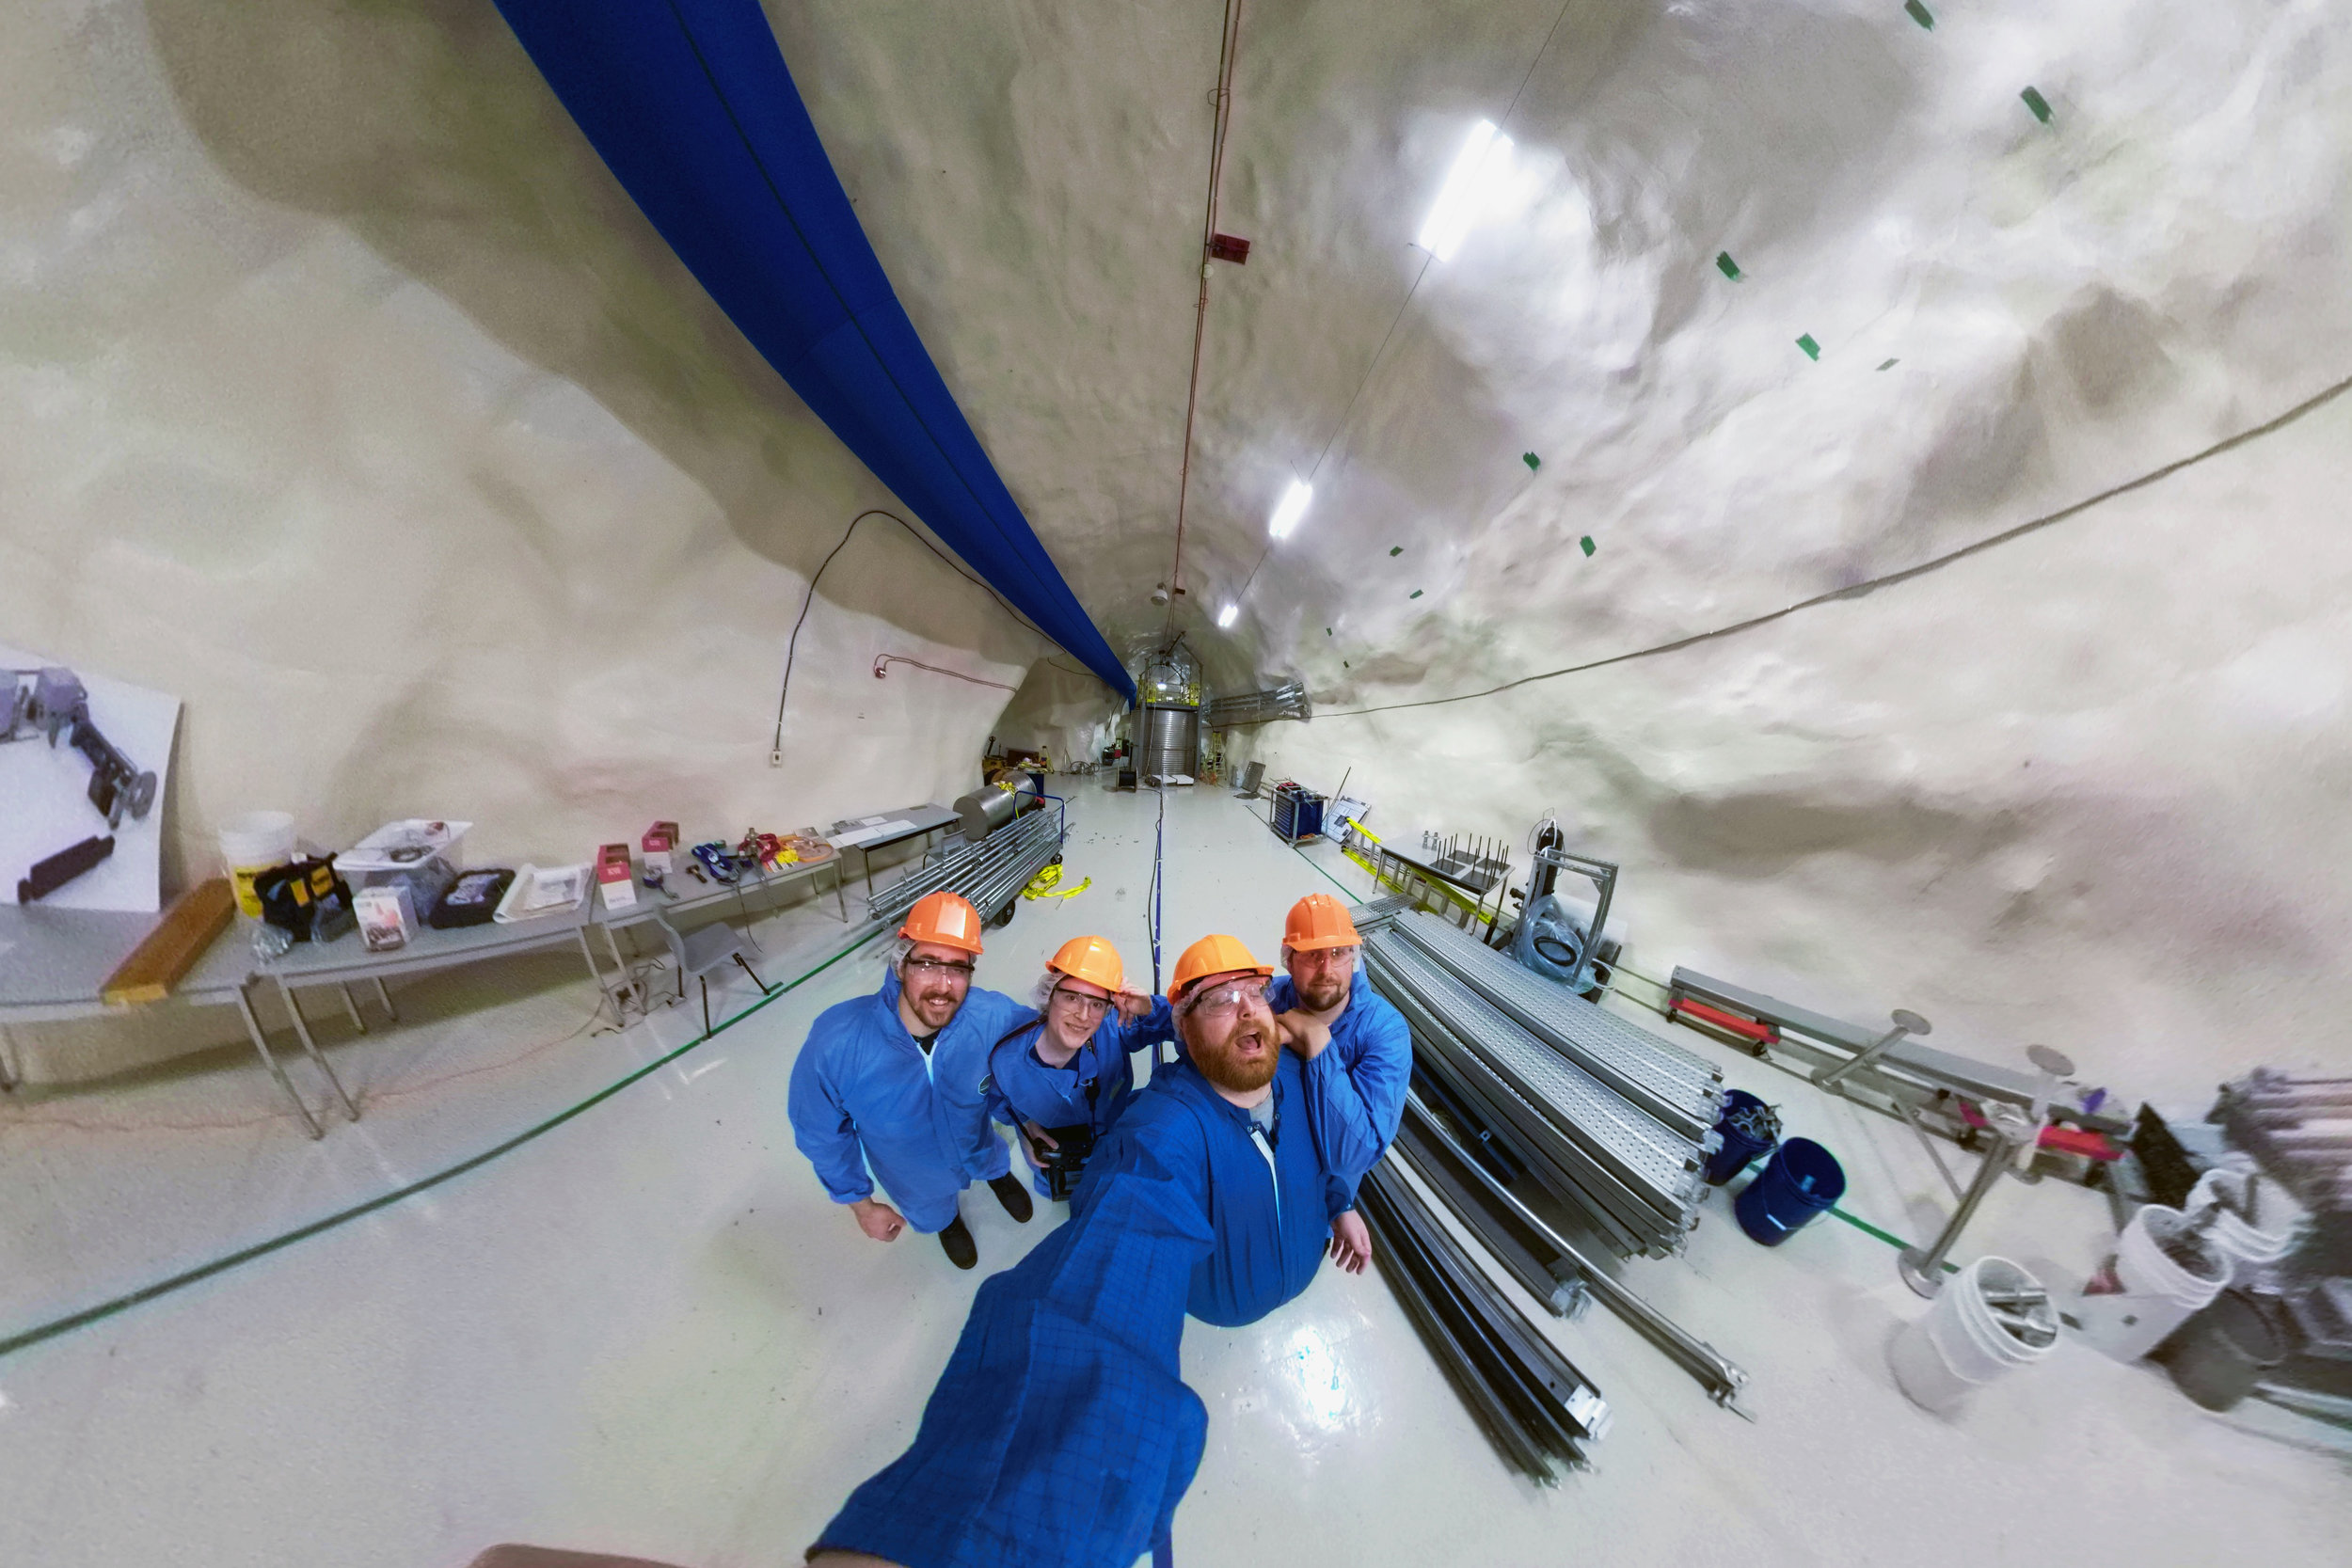 Canadiana  creators at SNOLAB, a world-renowned dark matter  facility located 2 km beneath the surface of the Earth in Sudbury,  Ontario. (L-R: Kyle Cucco, Ashley Brook, Adam Bunch, and Josef Beeby)